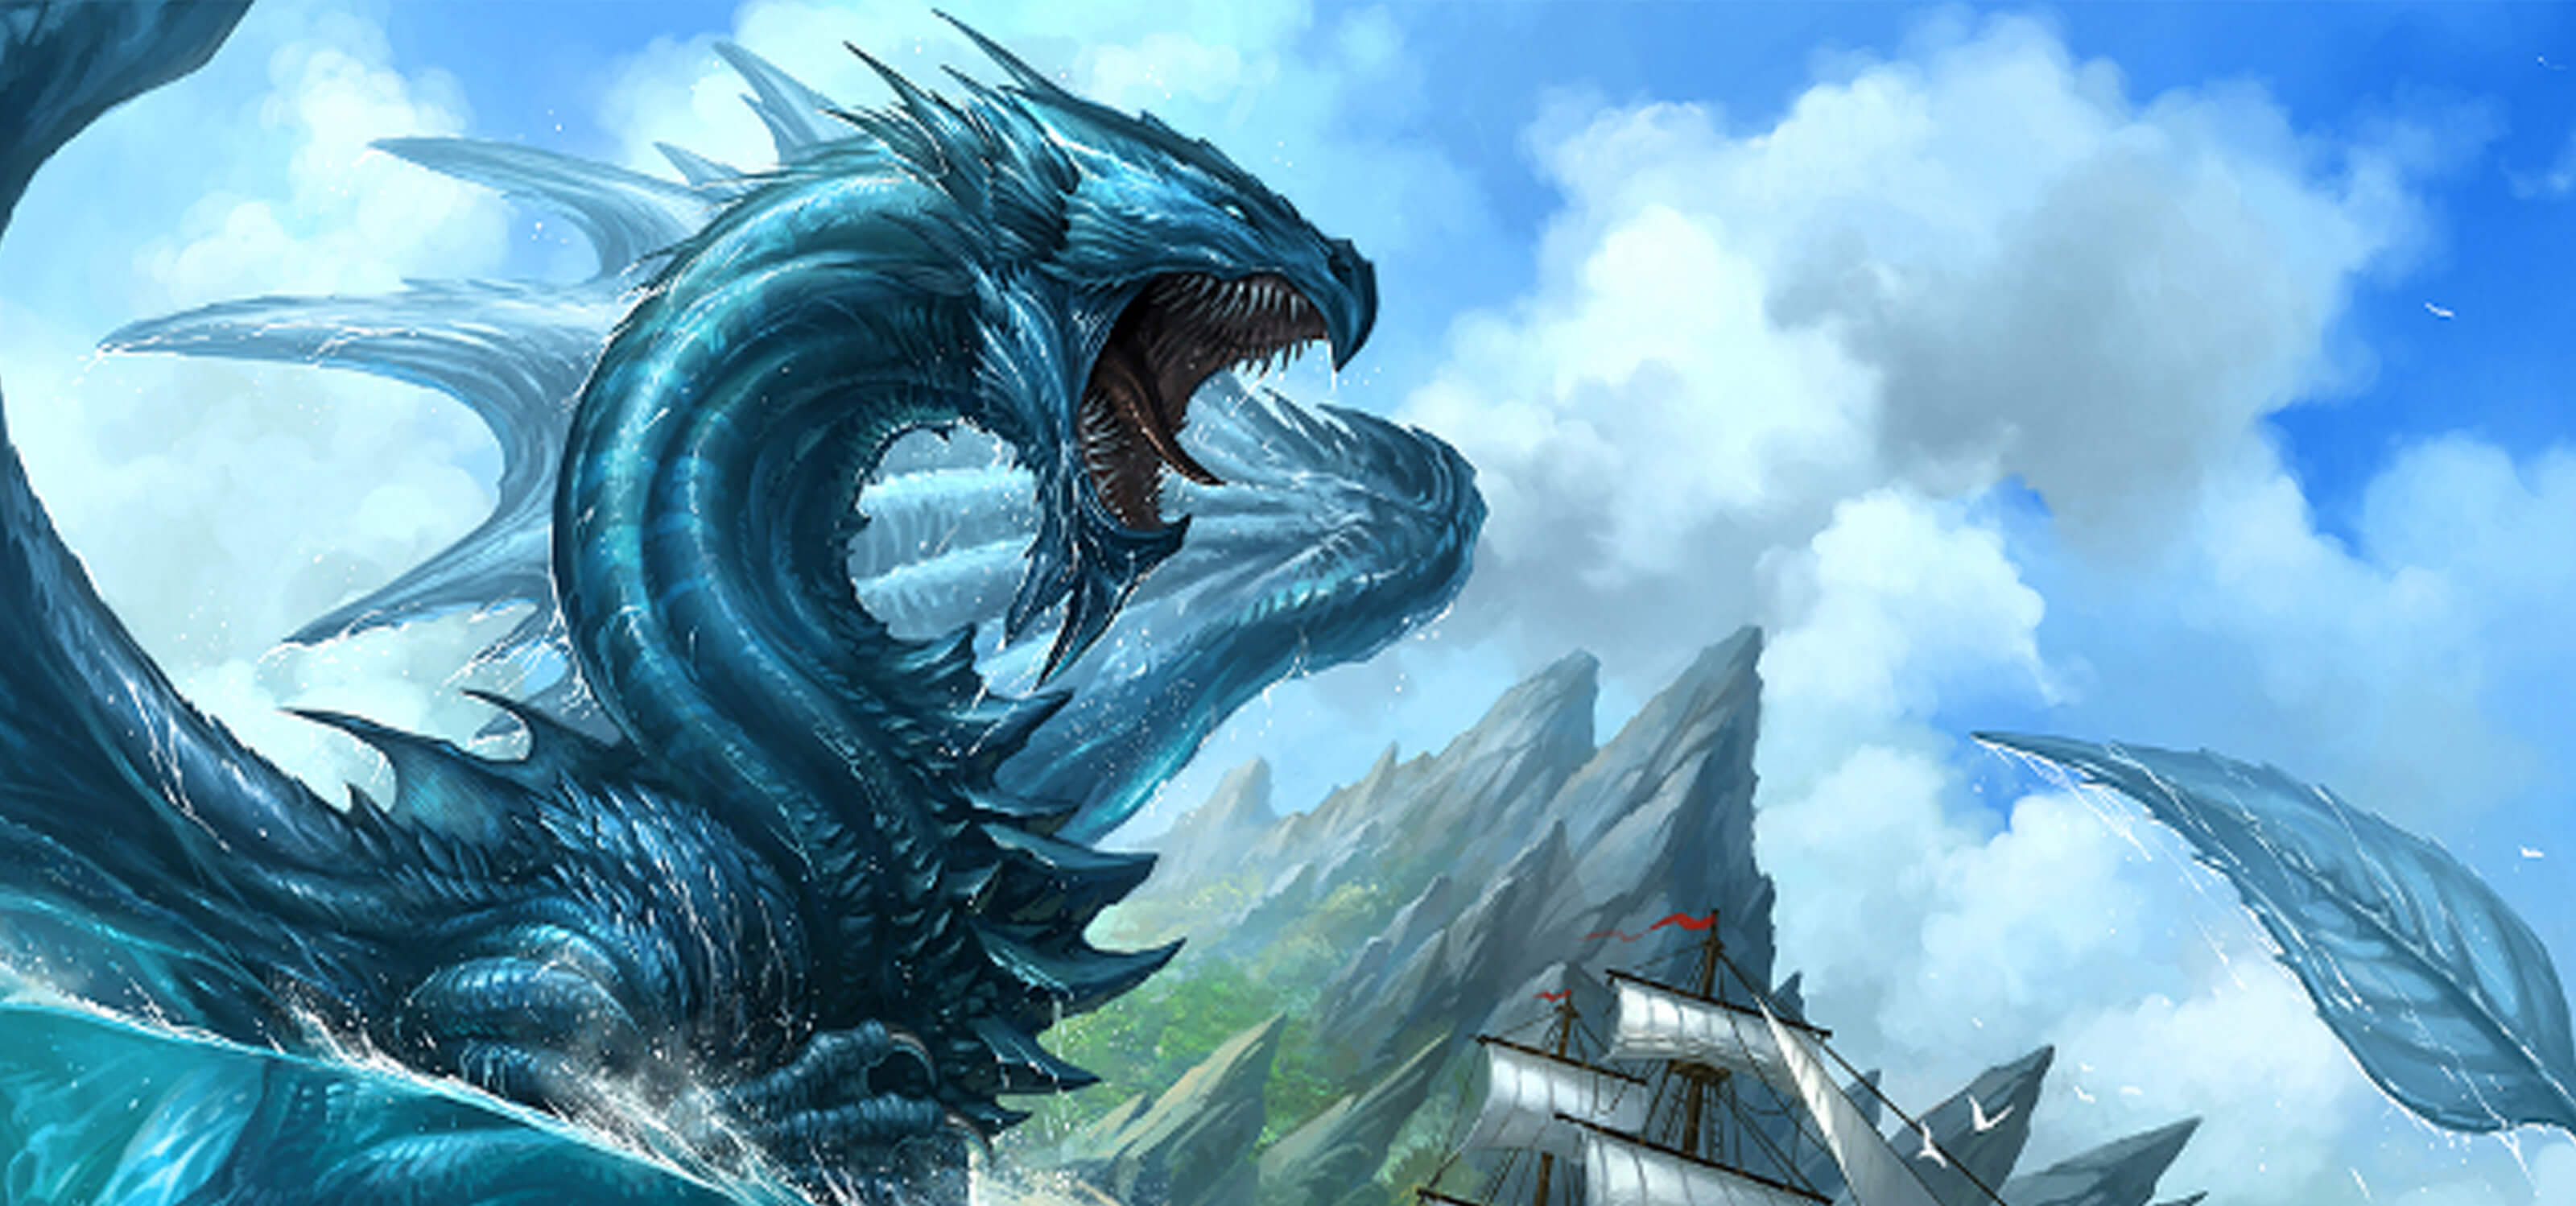 A blue dragon swimming in the ocean, about to pounce upon a galleon with a rocky island behind